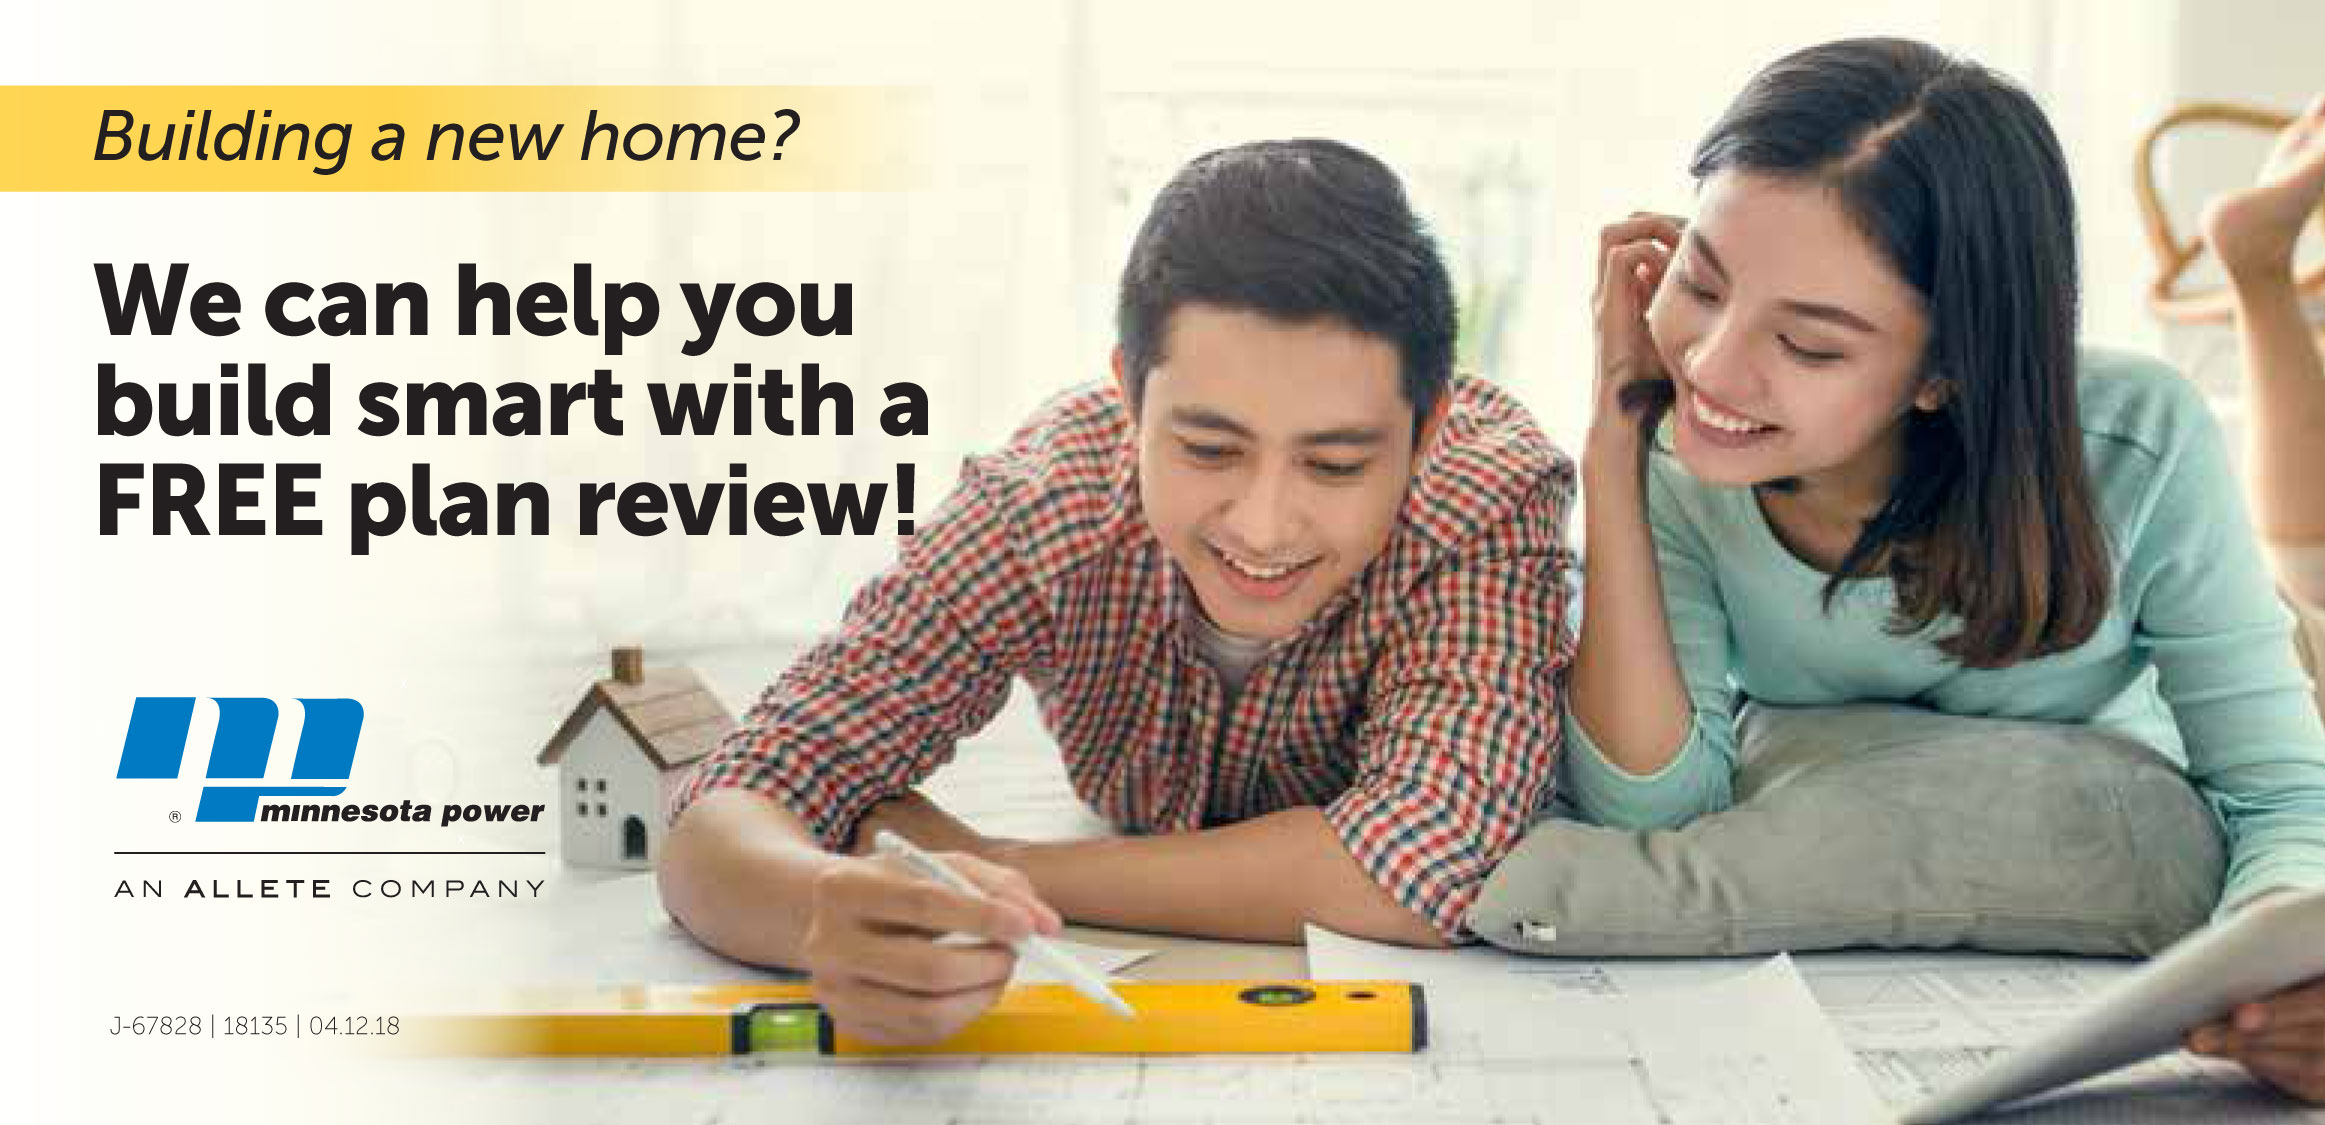 Building a new home? We can help you build smart with a FREE plan review!